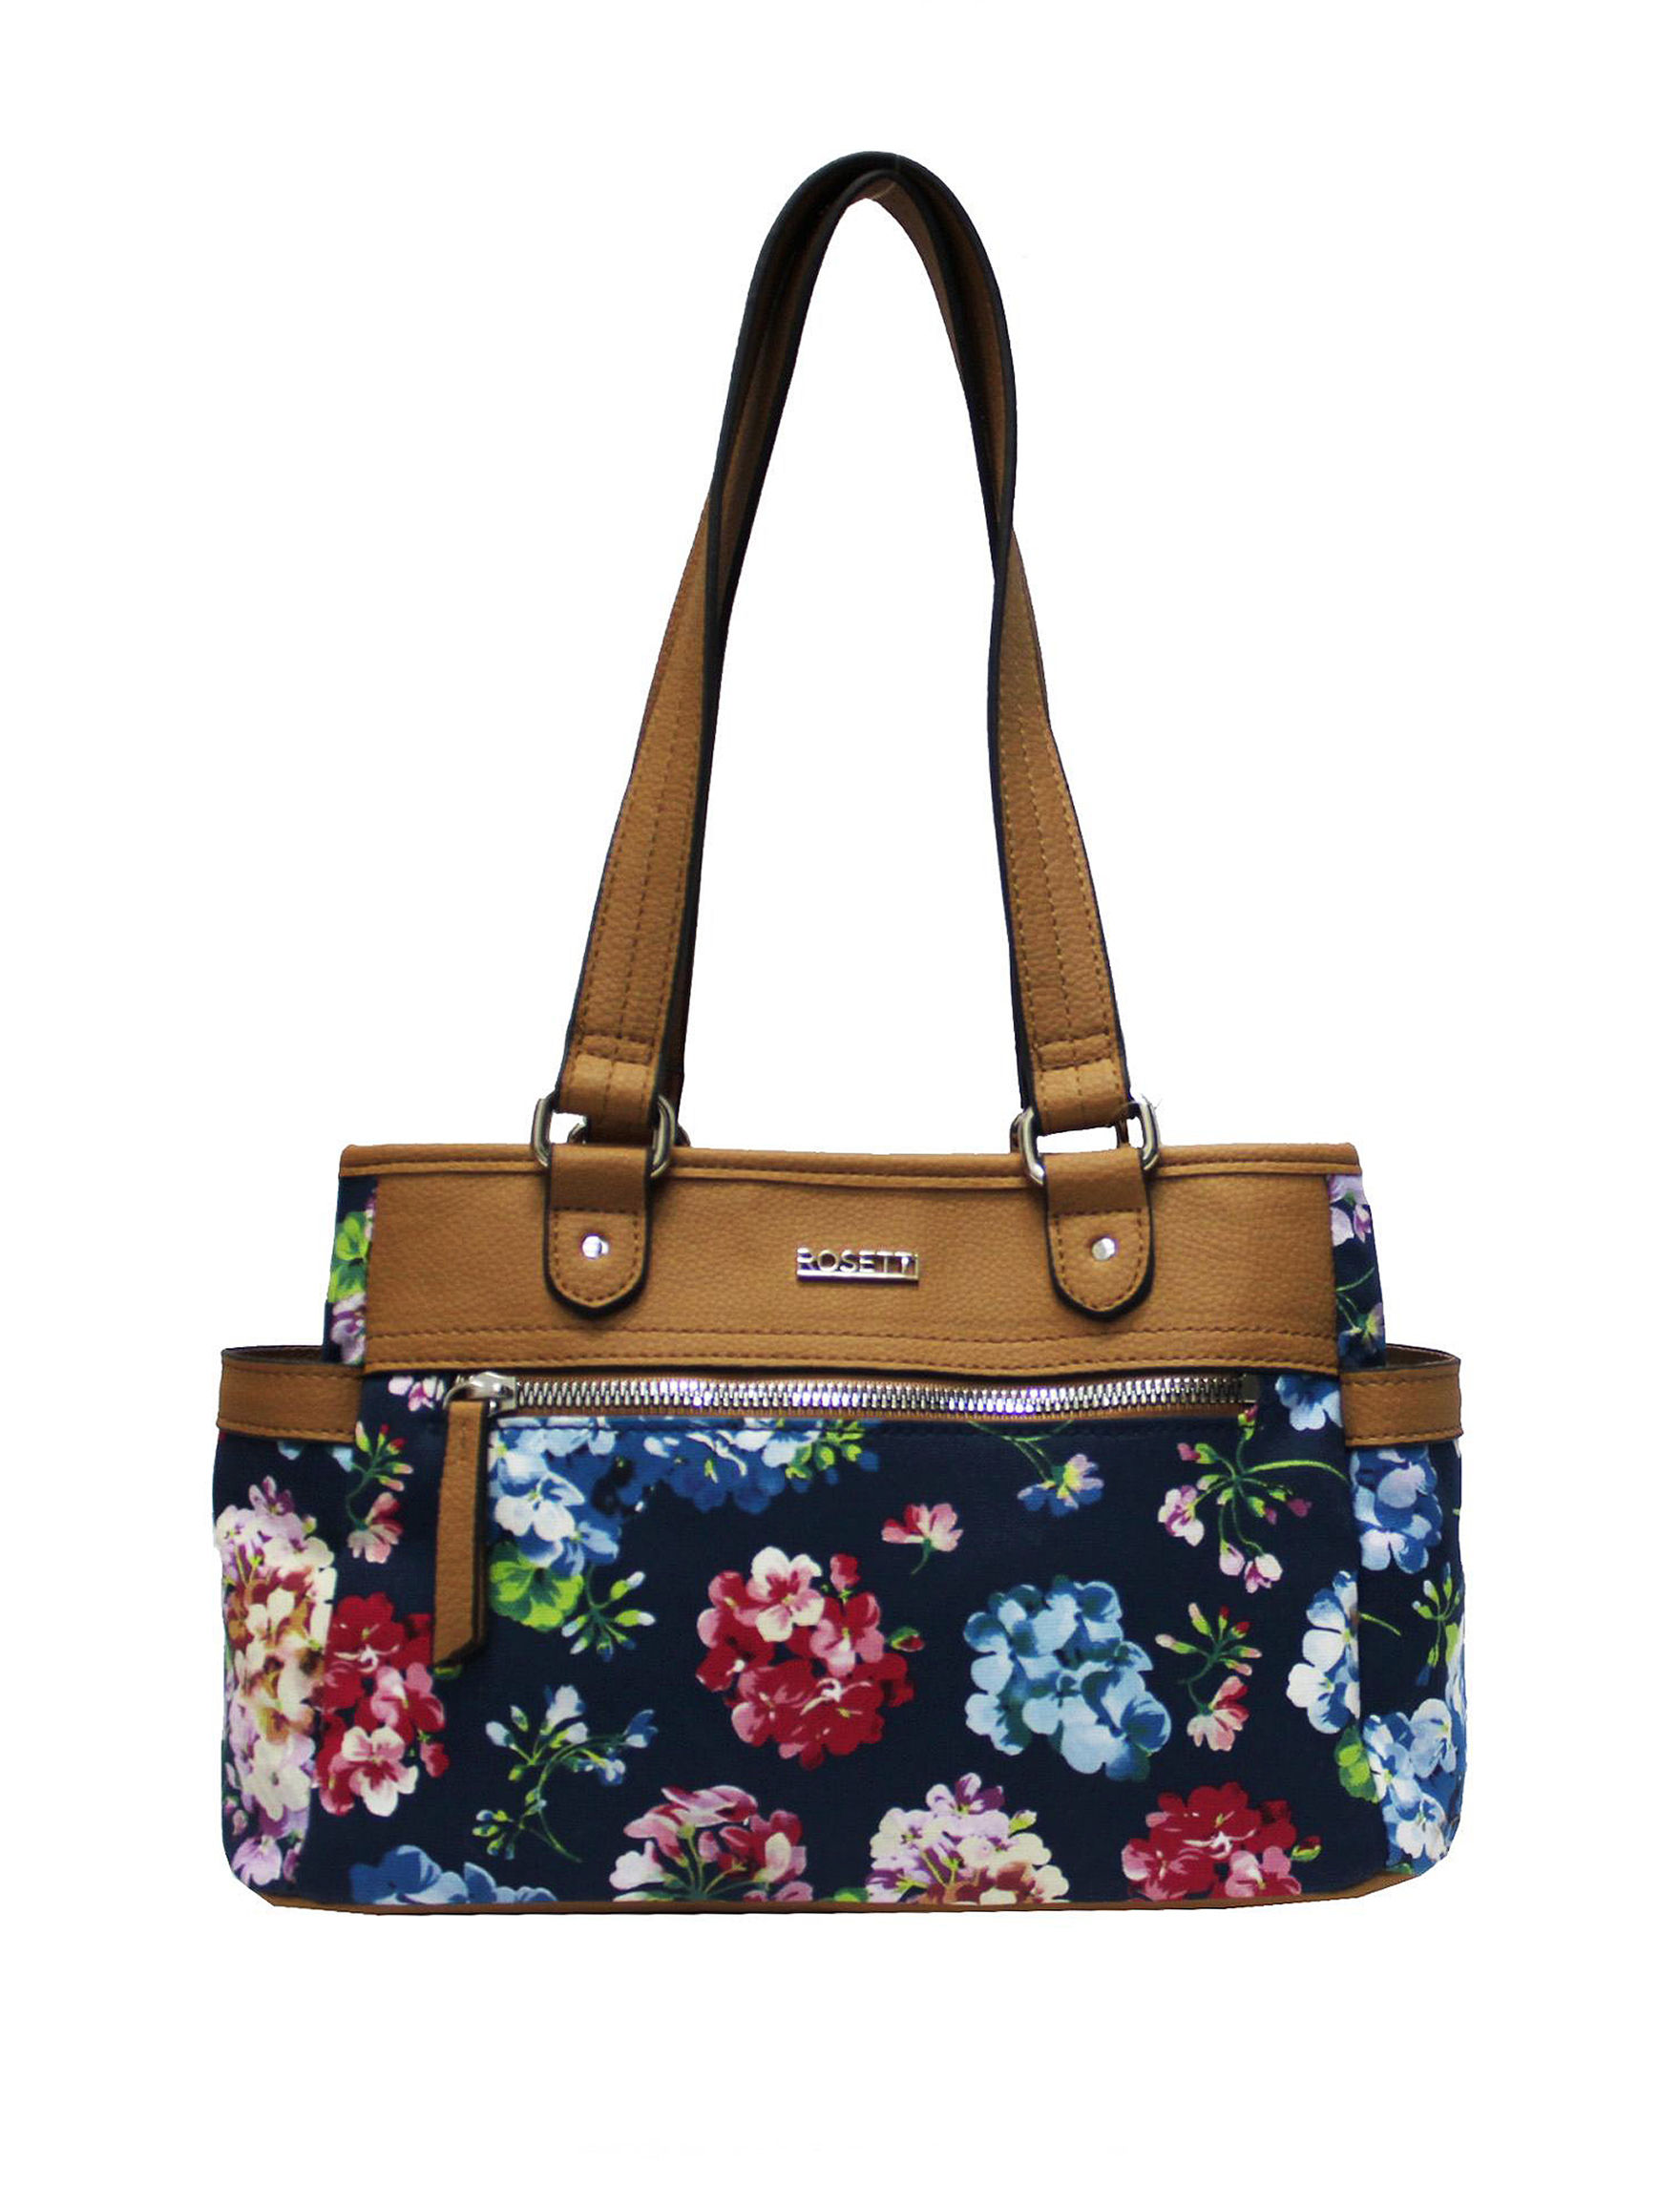 Rosetti Navy Floral